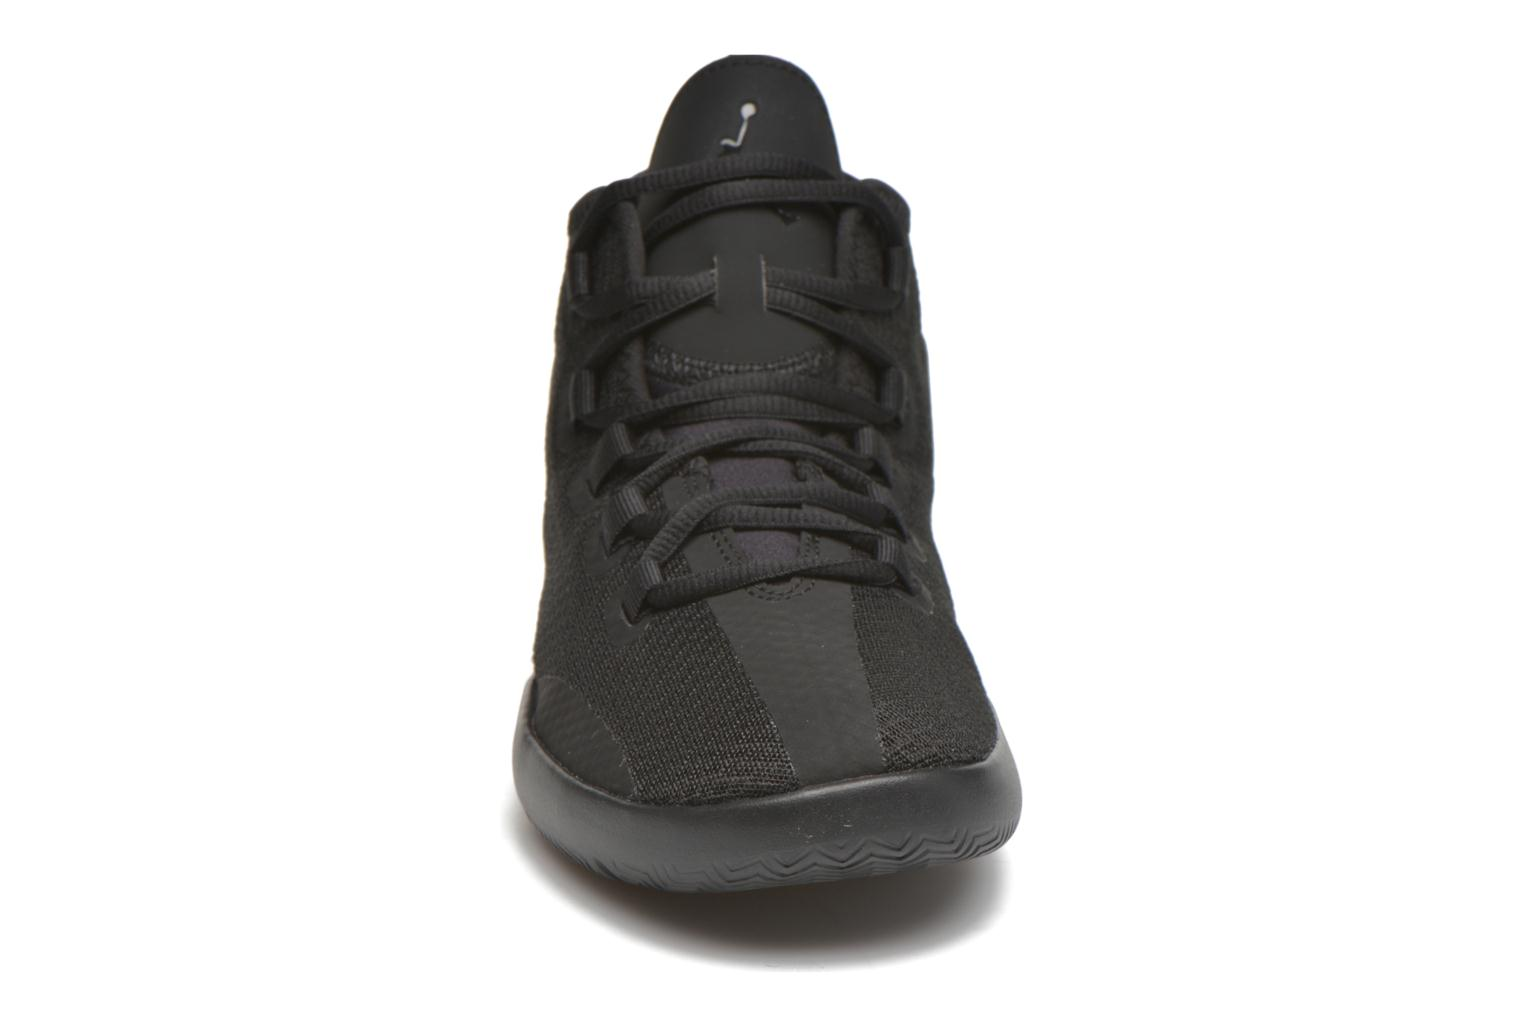 Jordan Reveal Bg Black/Black-Black-Infrared 23